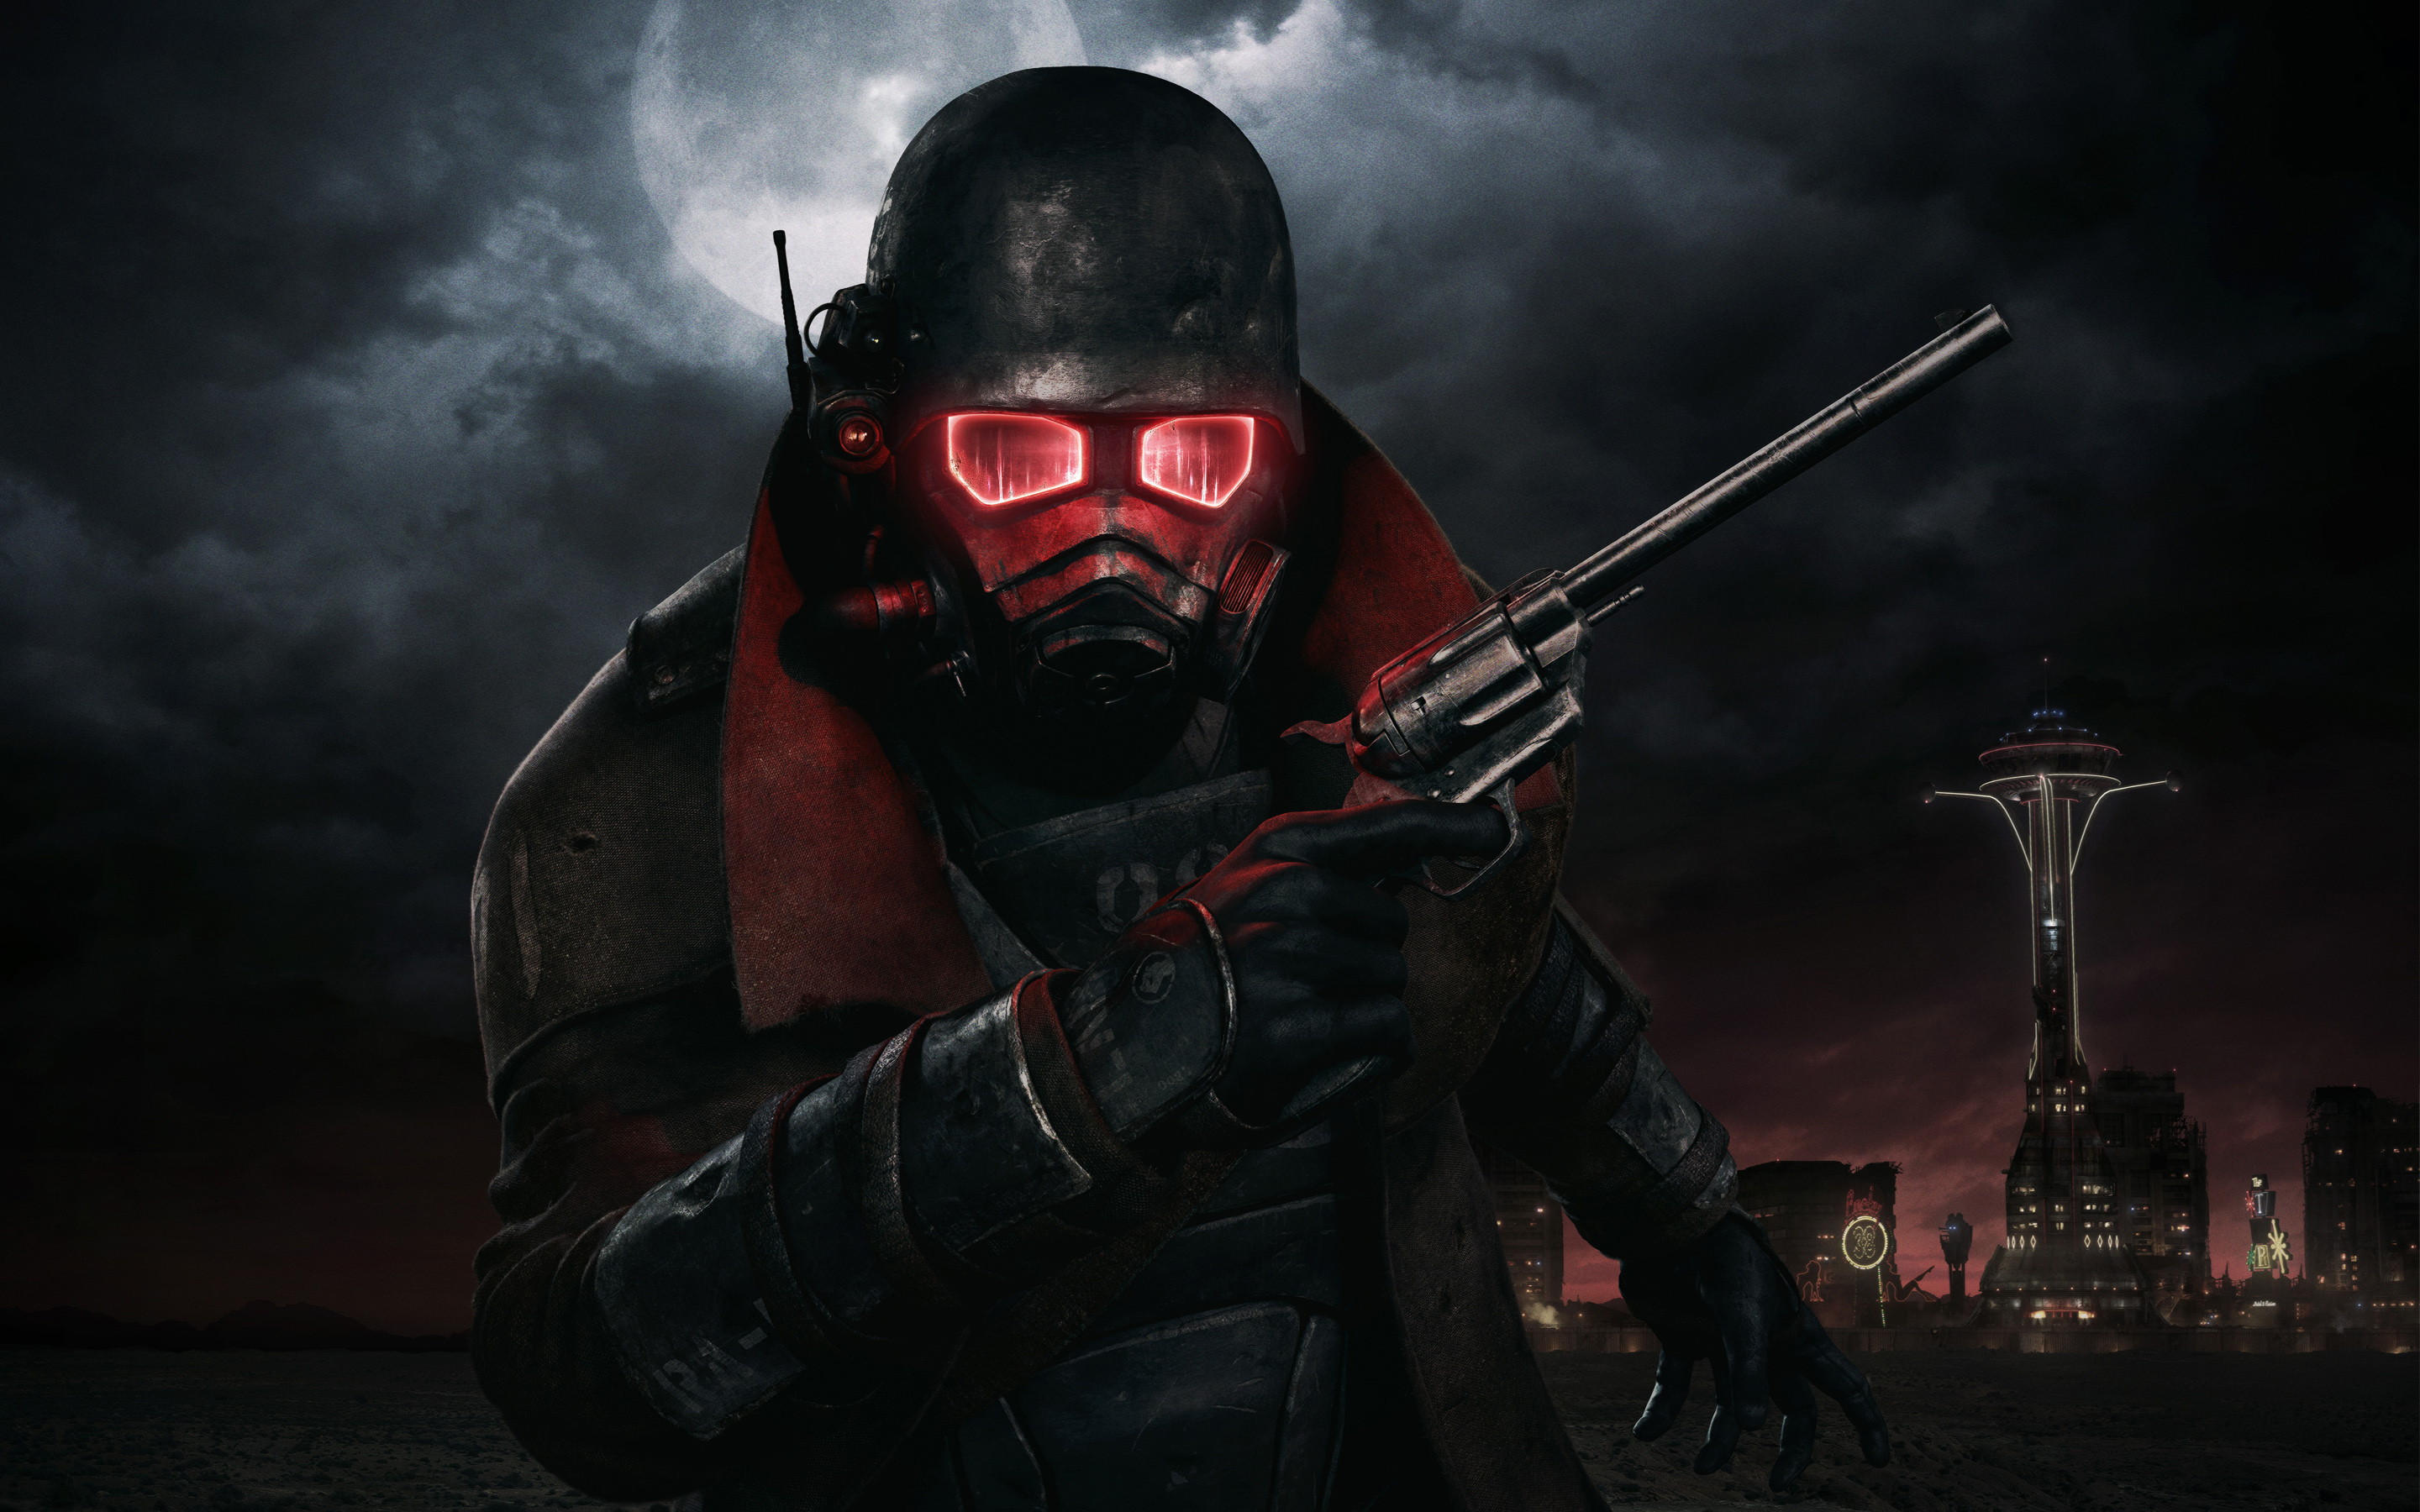 fallout new vegas game #4187486, 2880x1800 | all for desktop